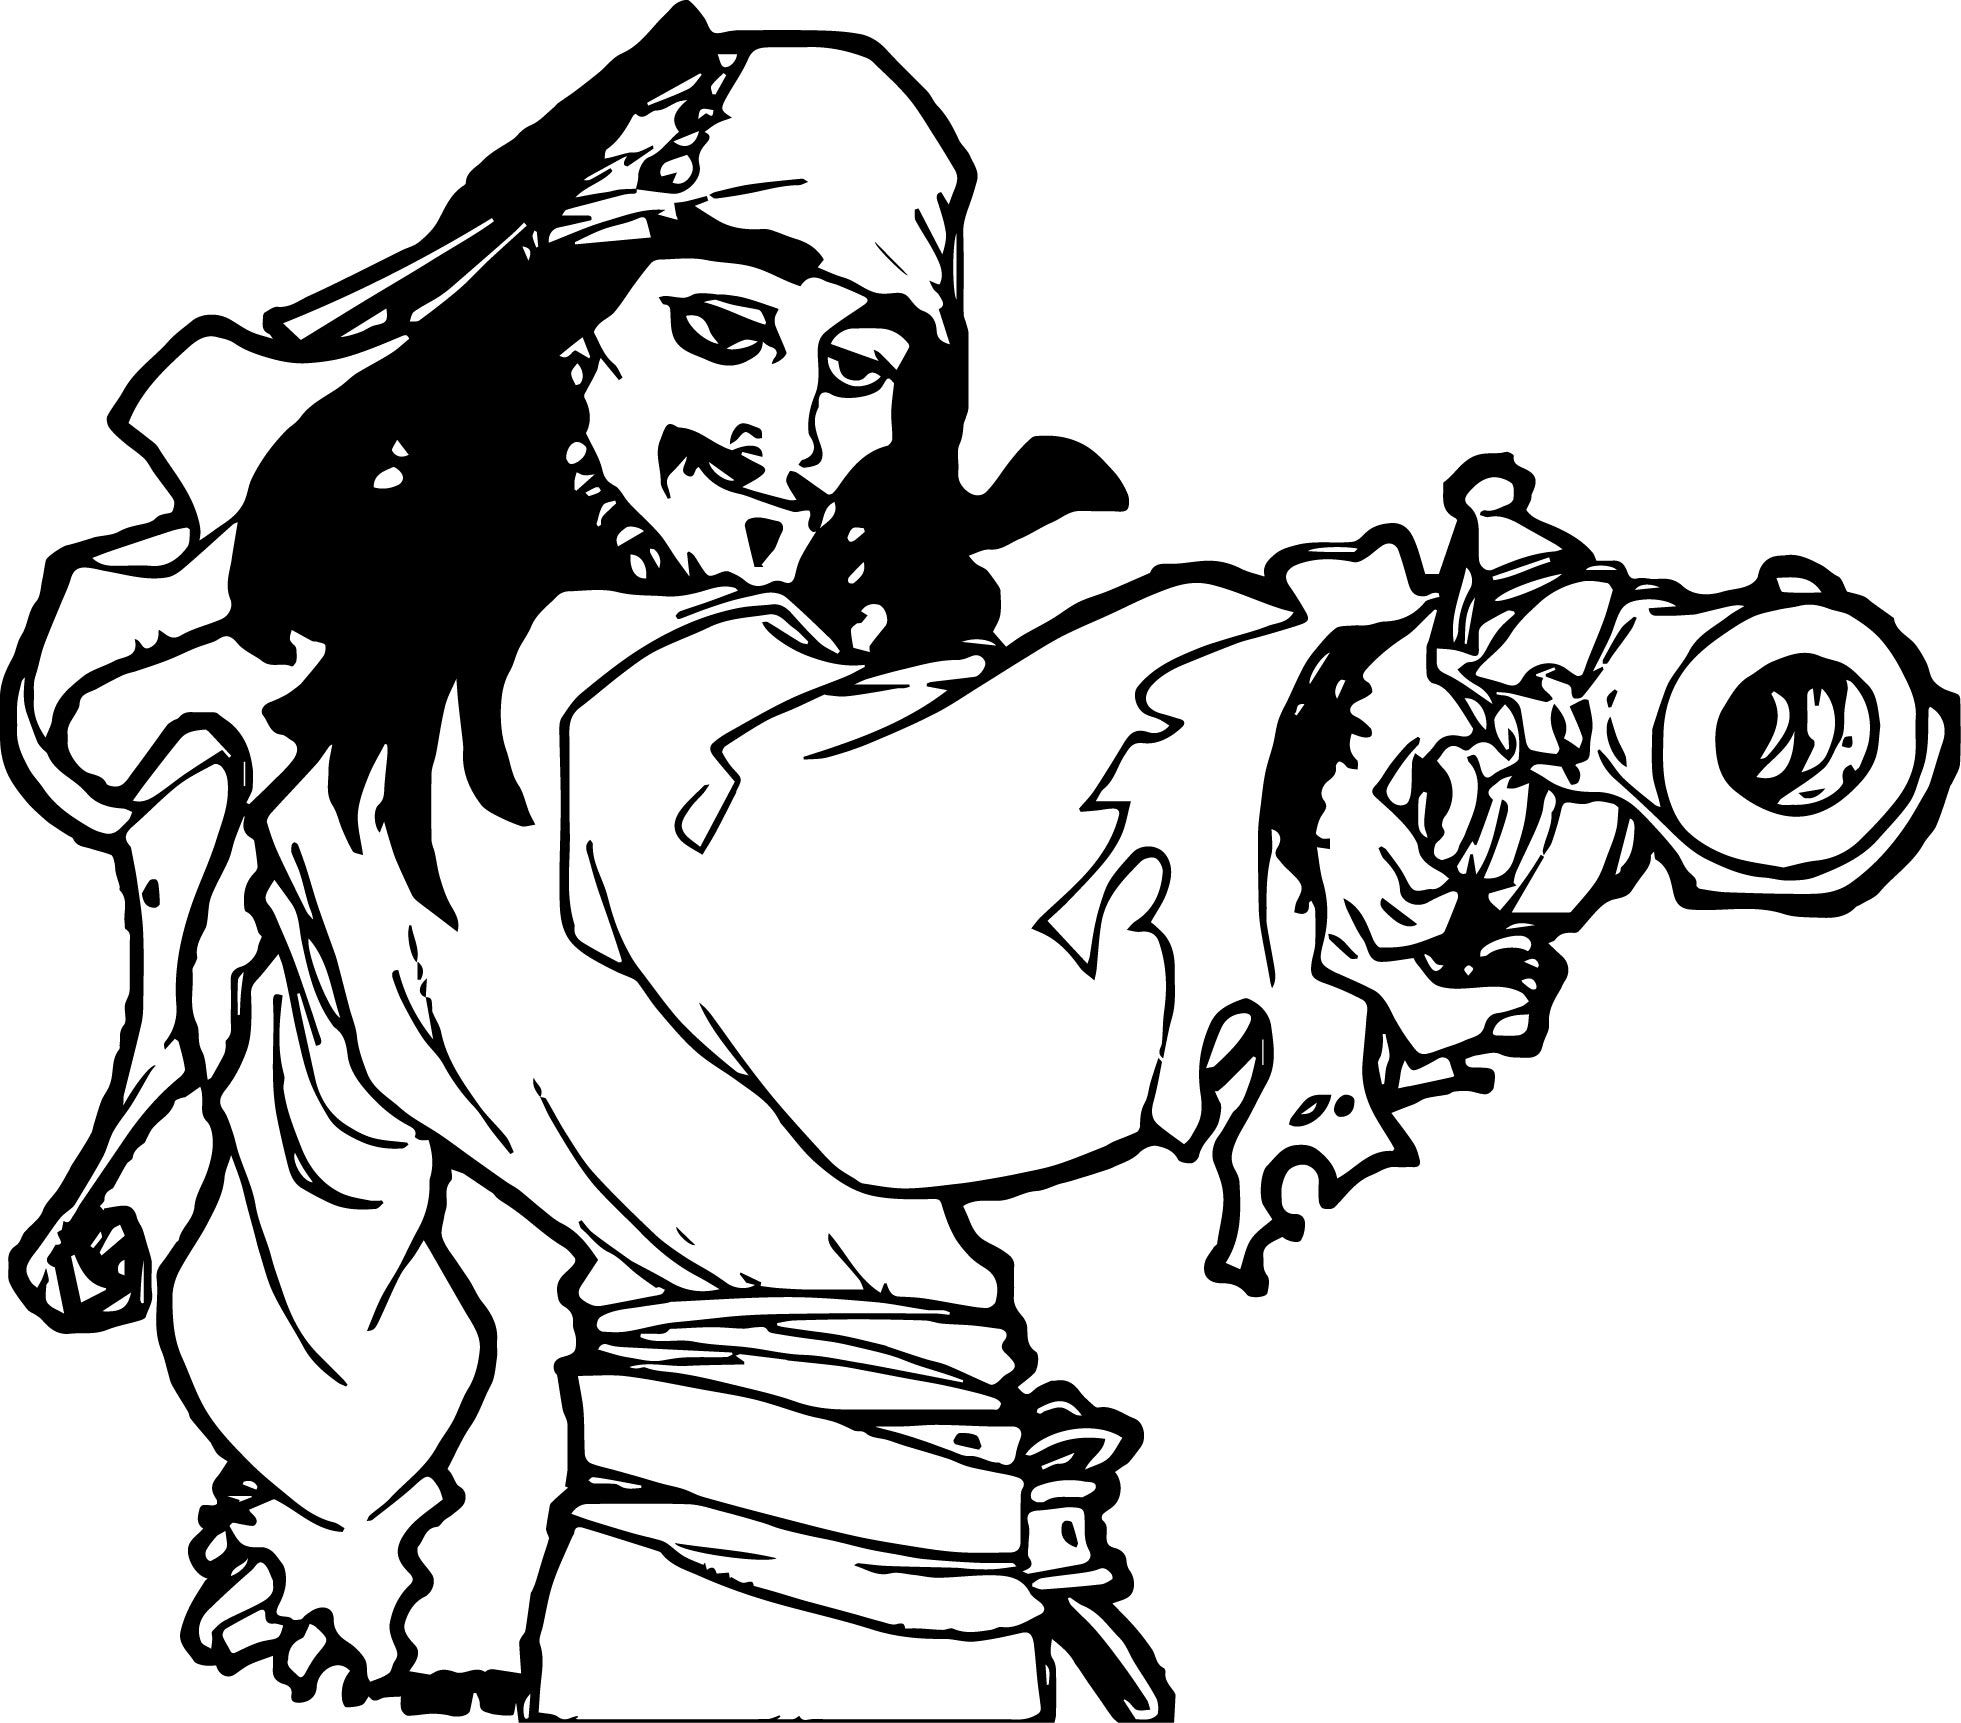 Awesome Pirates Of The Caribbean Man Character Jack Sparrow Are You Sure Coloring Page Man Character Coloring Pages Jack Sparrow